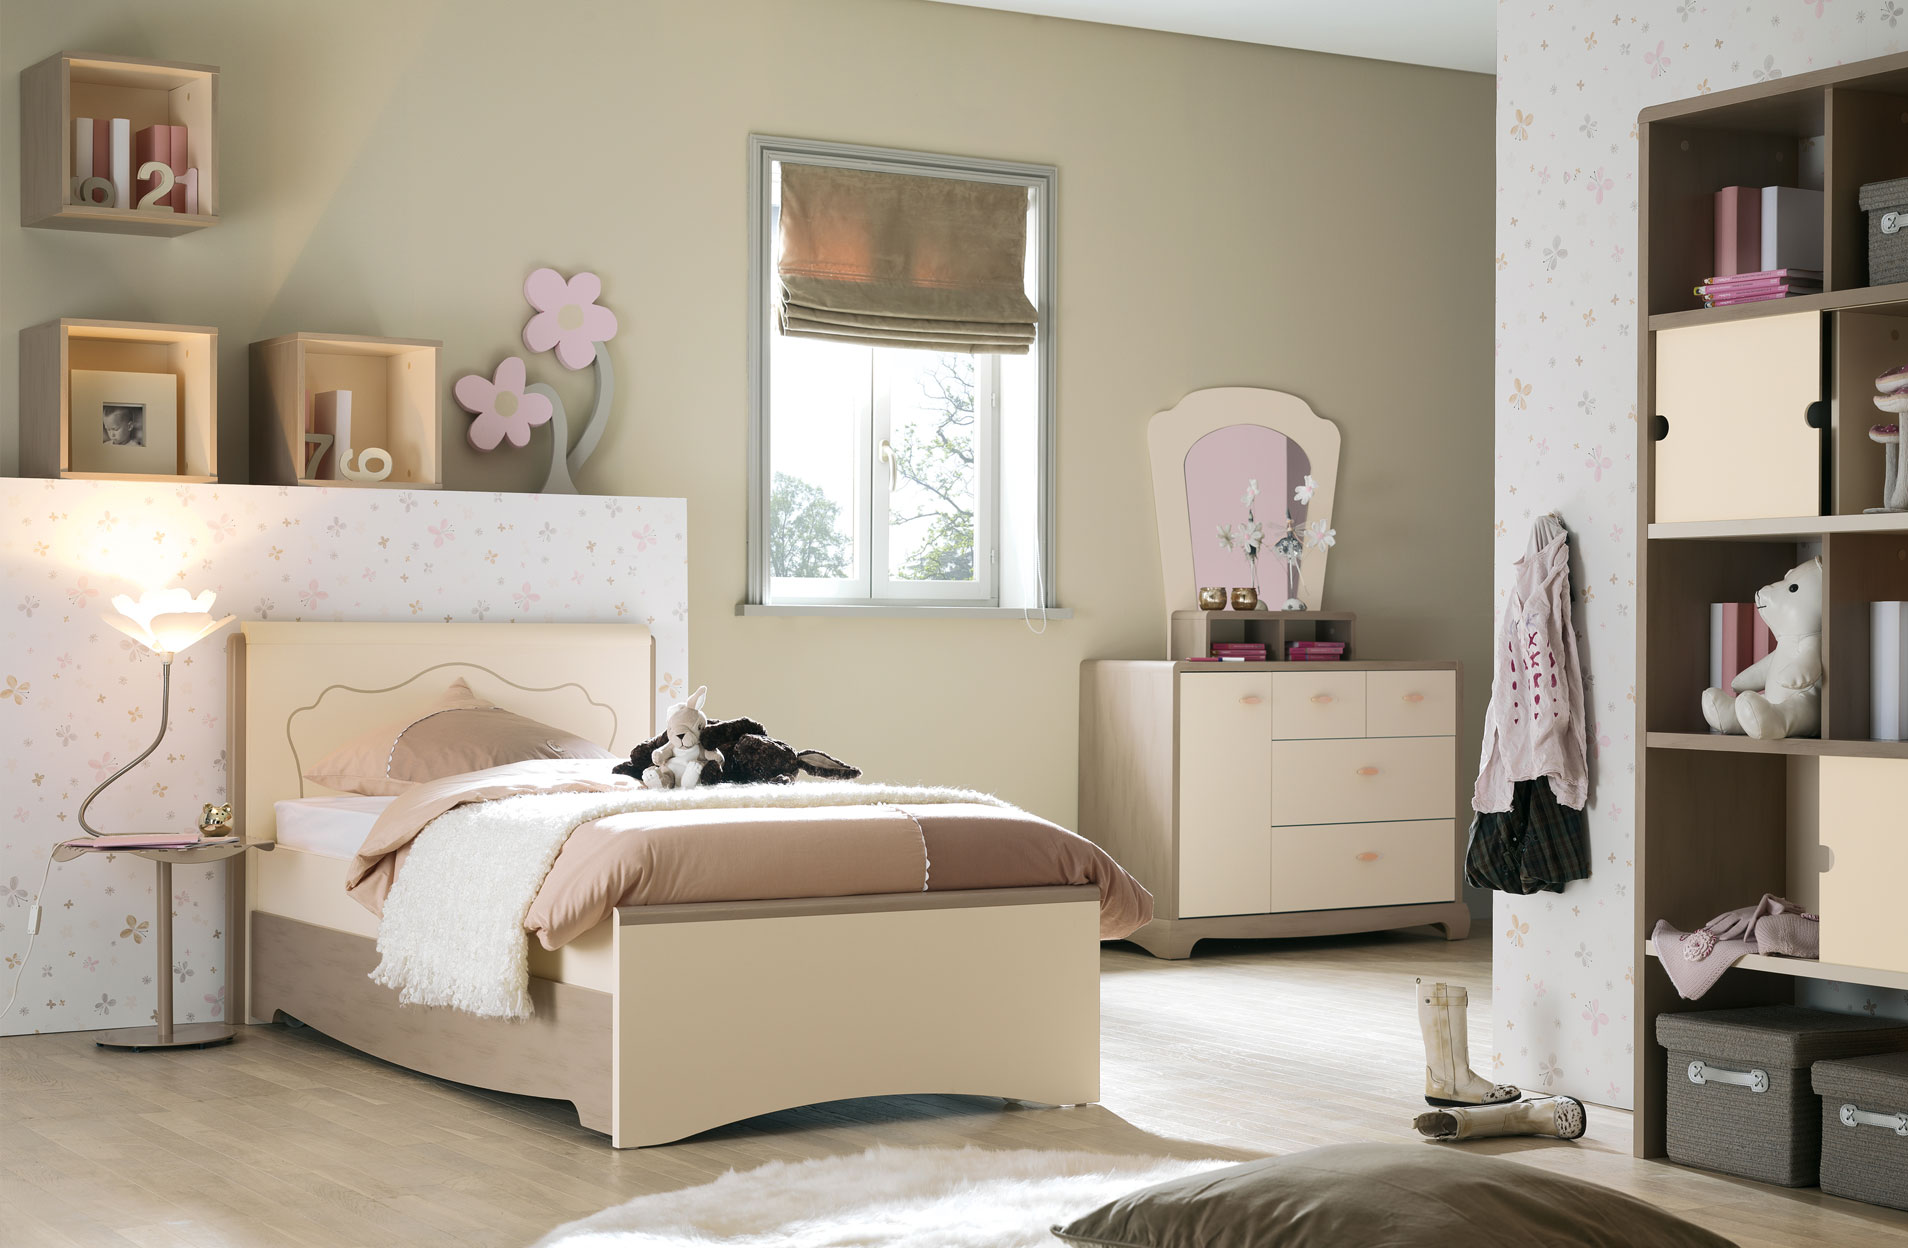 chambre a coucher gautier awesome meubles gautier collection cap horn with chambre a coucher. Black Bedroom Furniture Sets. Home Design Ideas